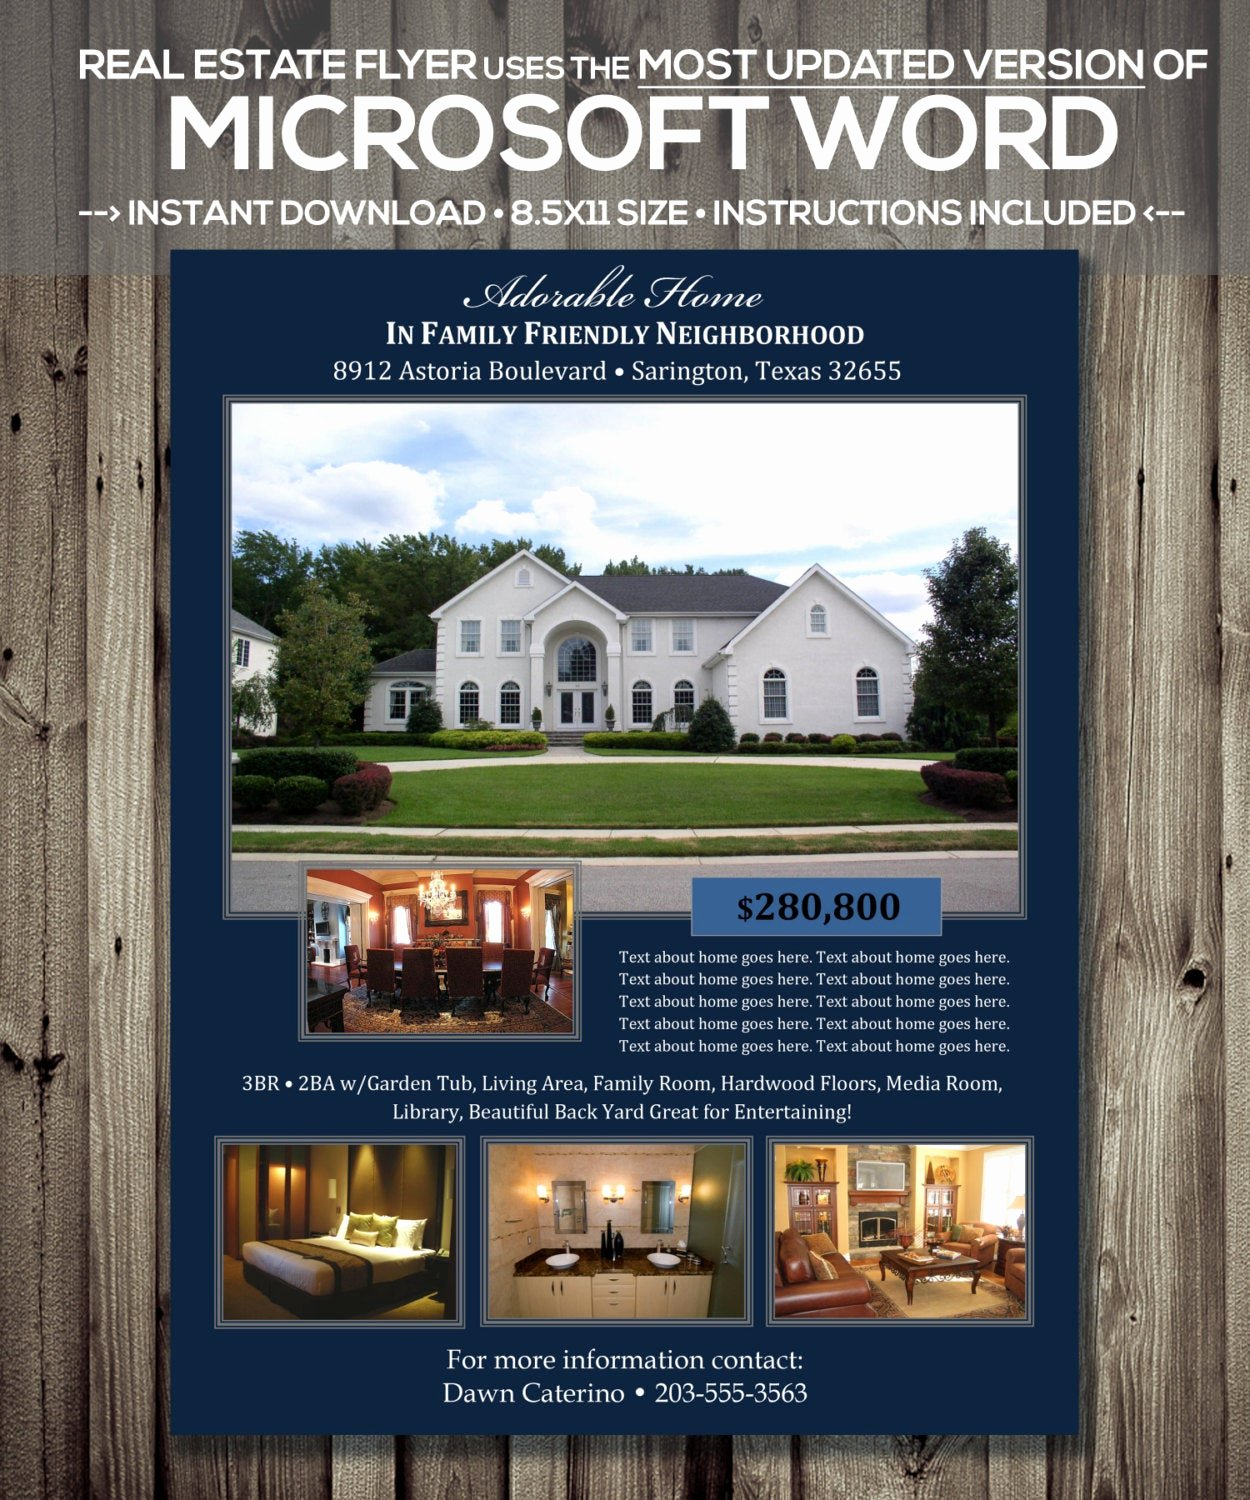 House for Sale Flyer Inspirational Real Estate Flyer Template Microsoft Word Cx Version